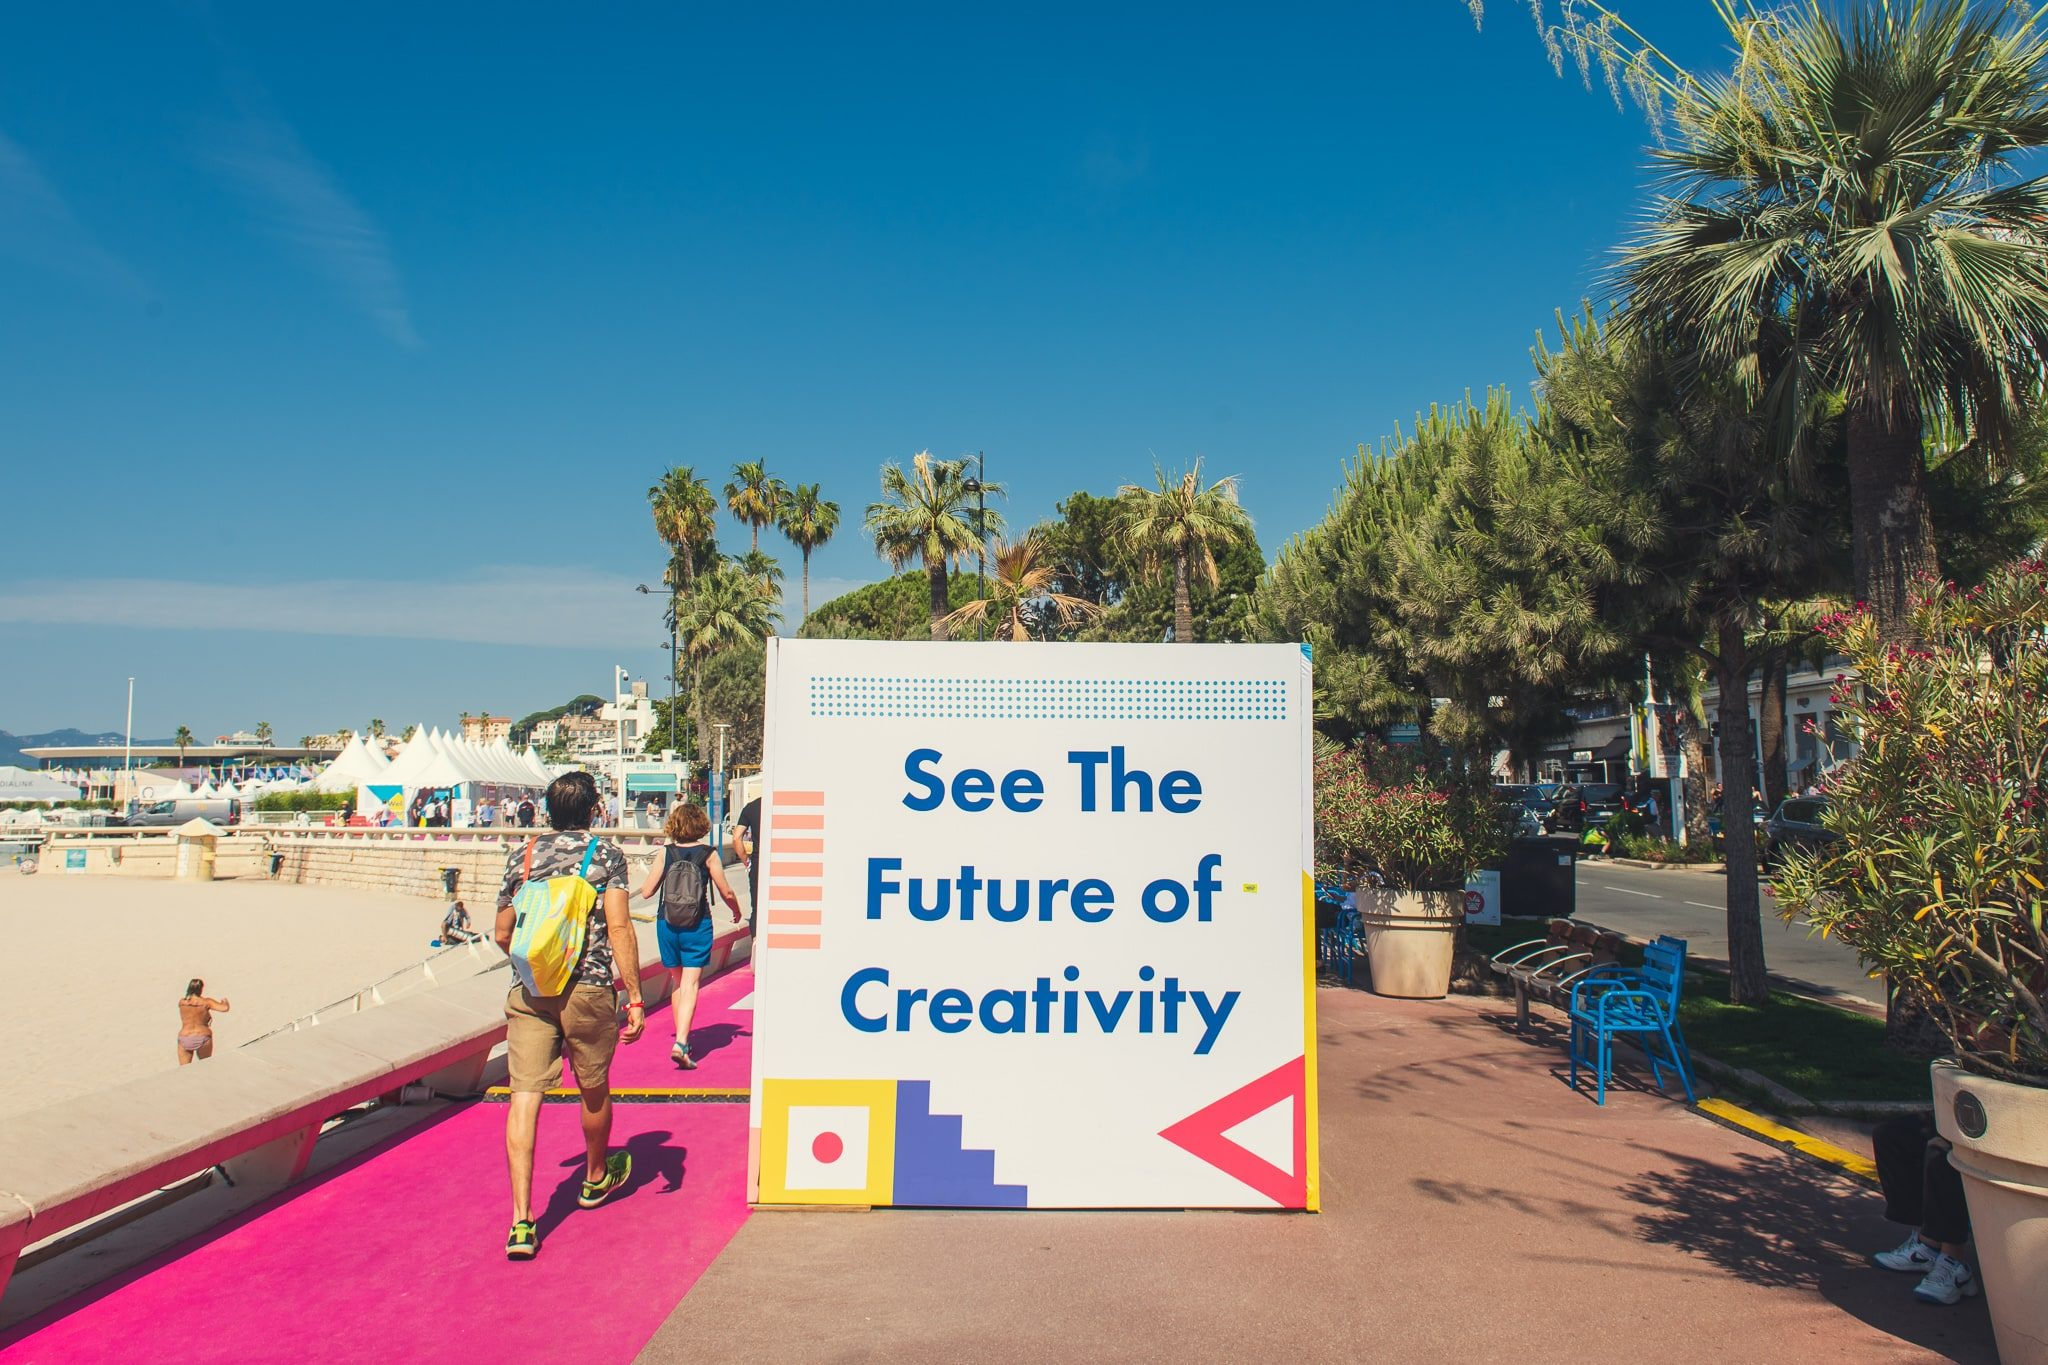 Flying at Higher Altitudes – Creativity Takes on Systemic Change at Cannes Lions